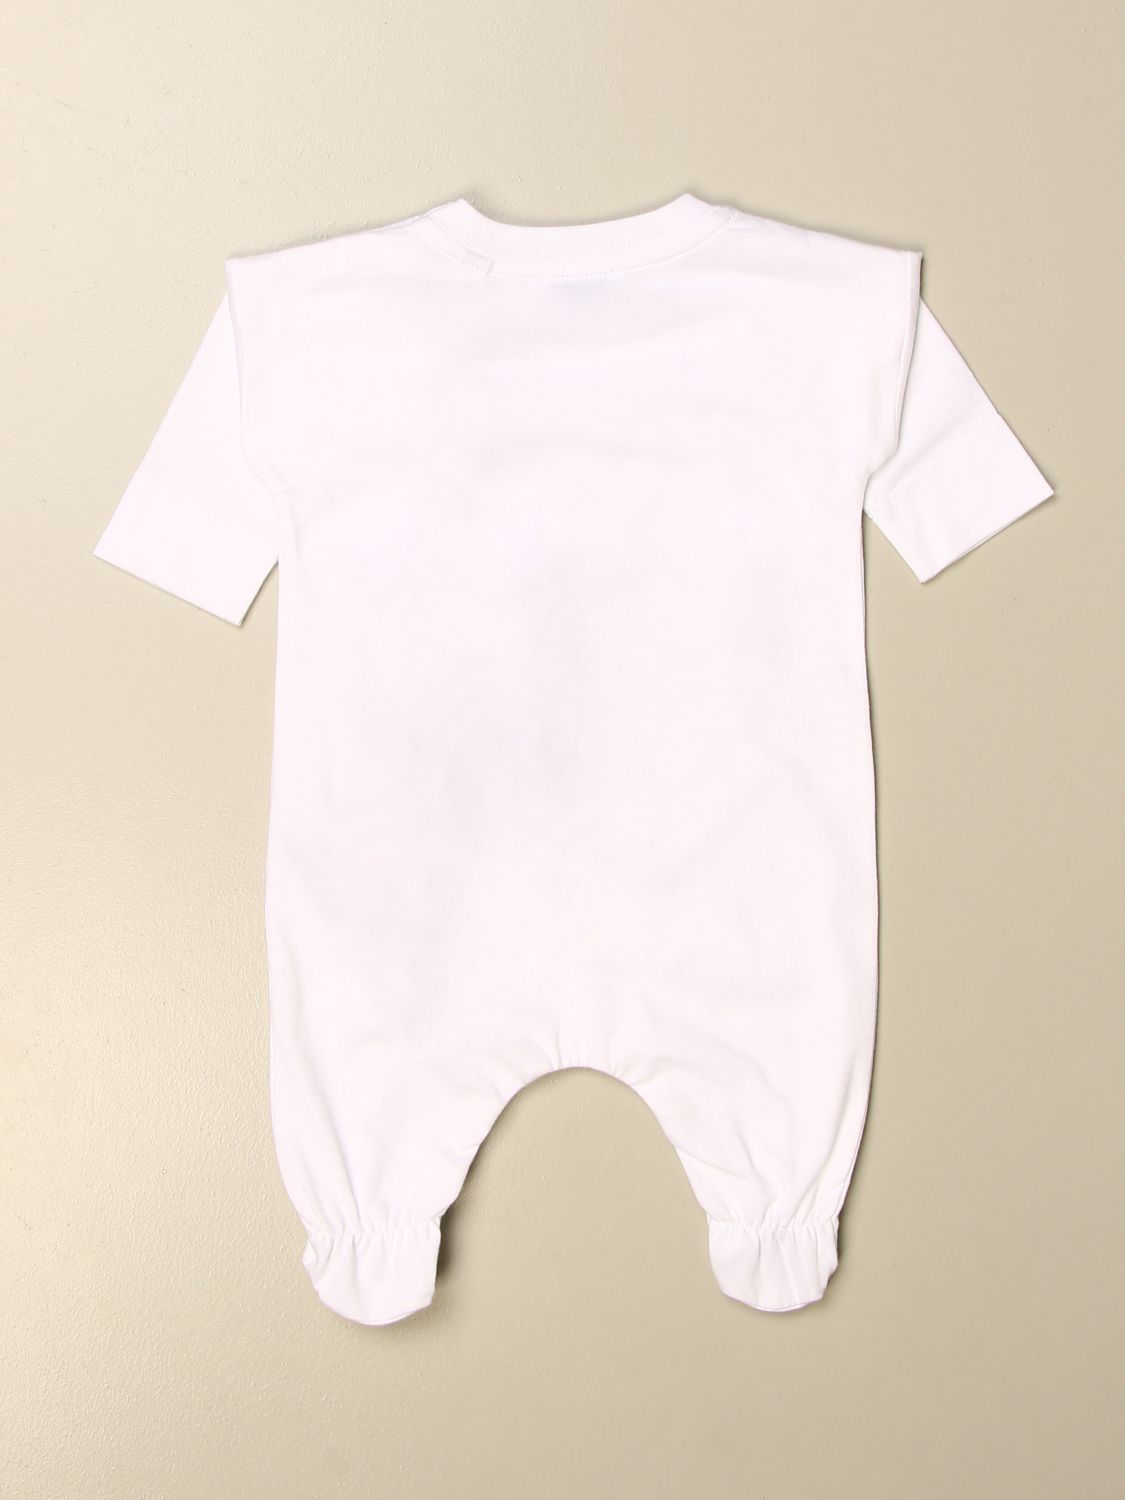 Tracksuit Burberry: Tracksuit kids Burberry white 2